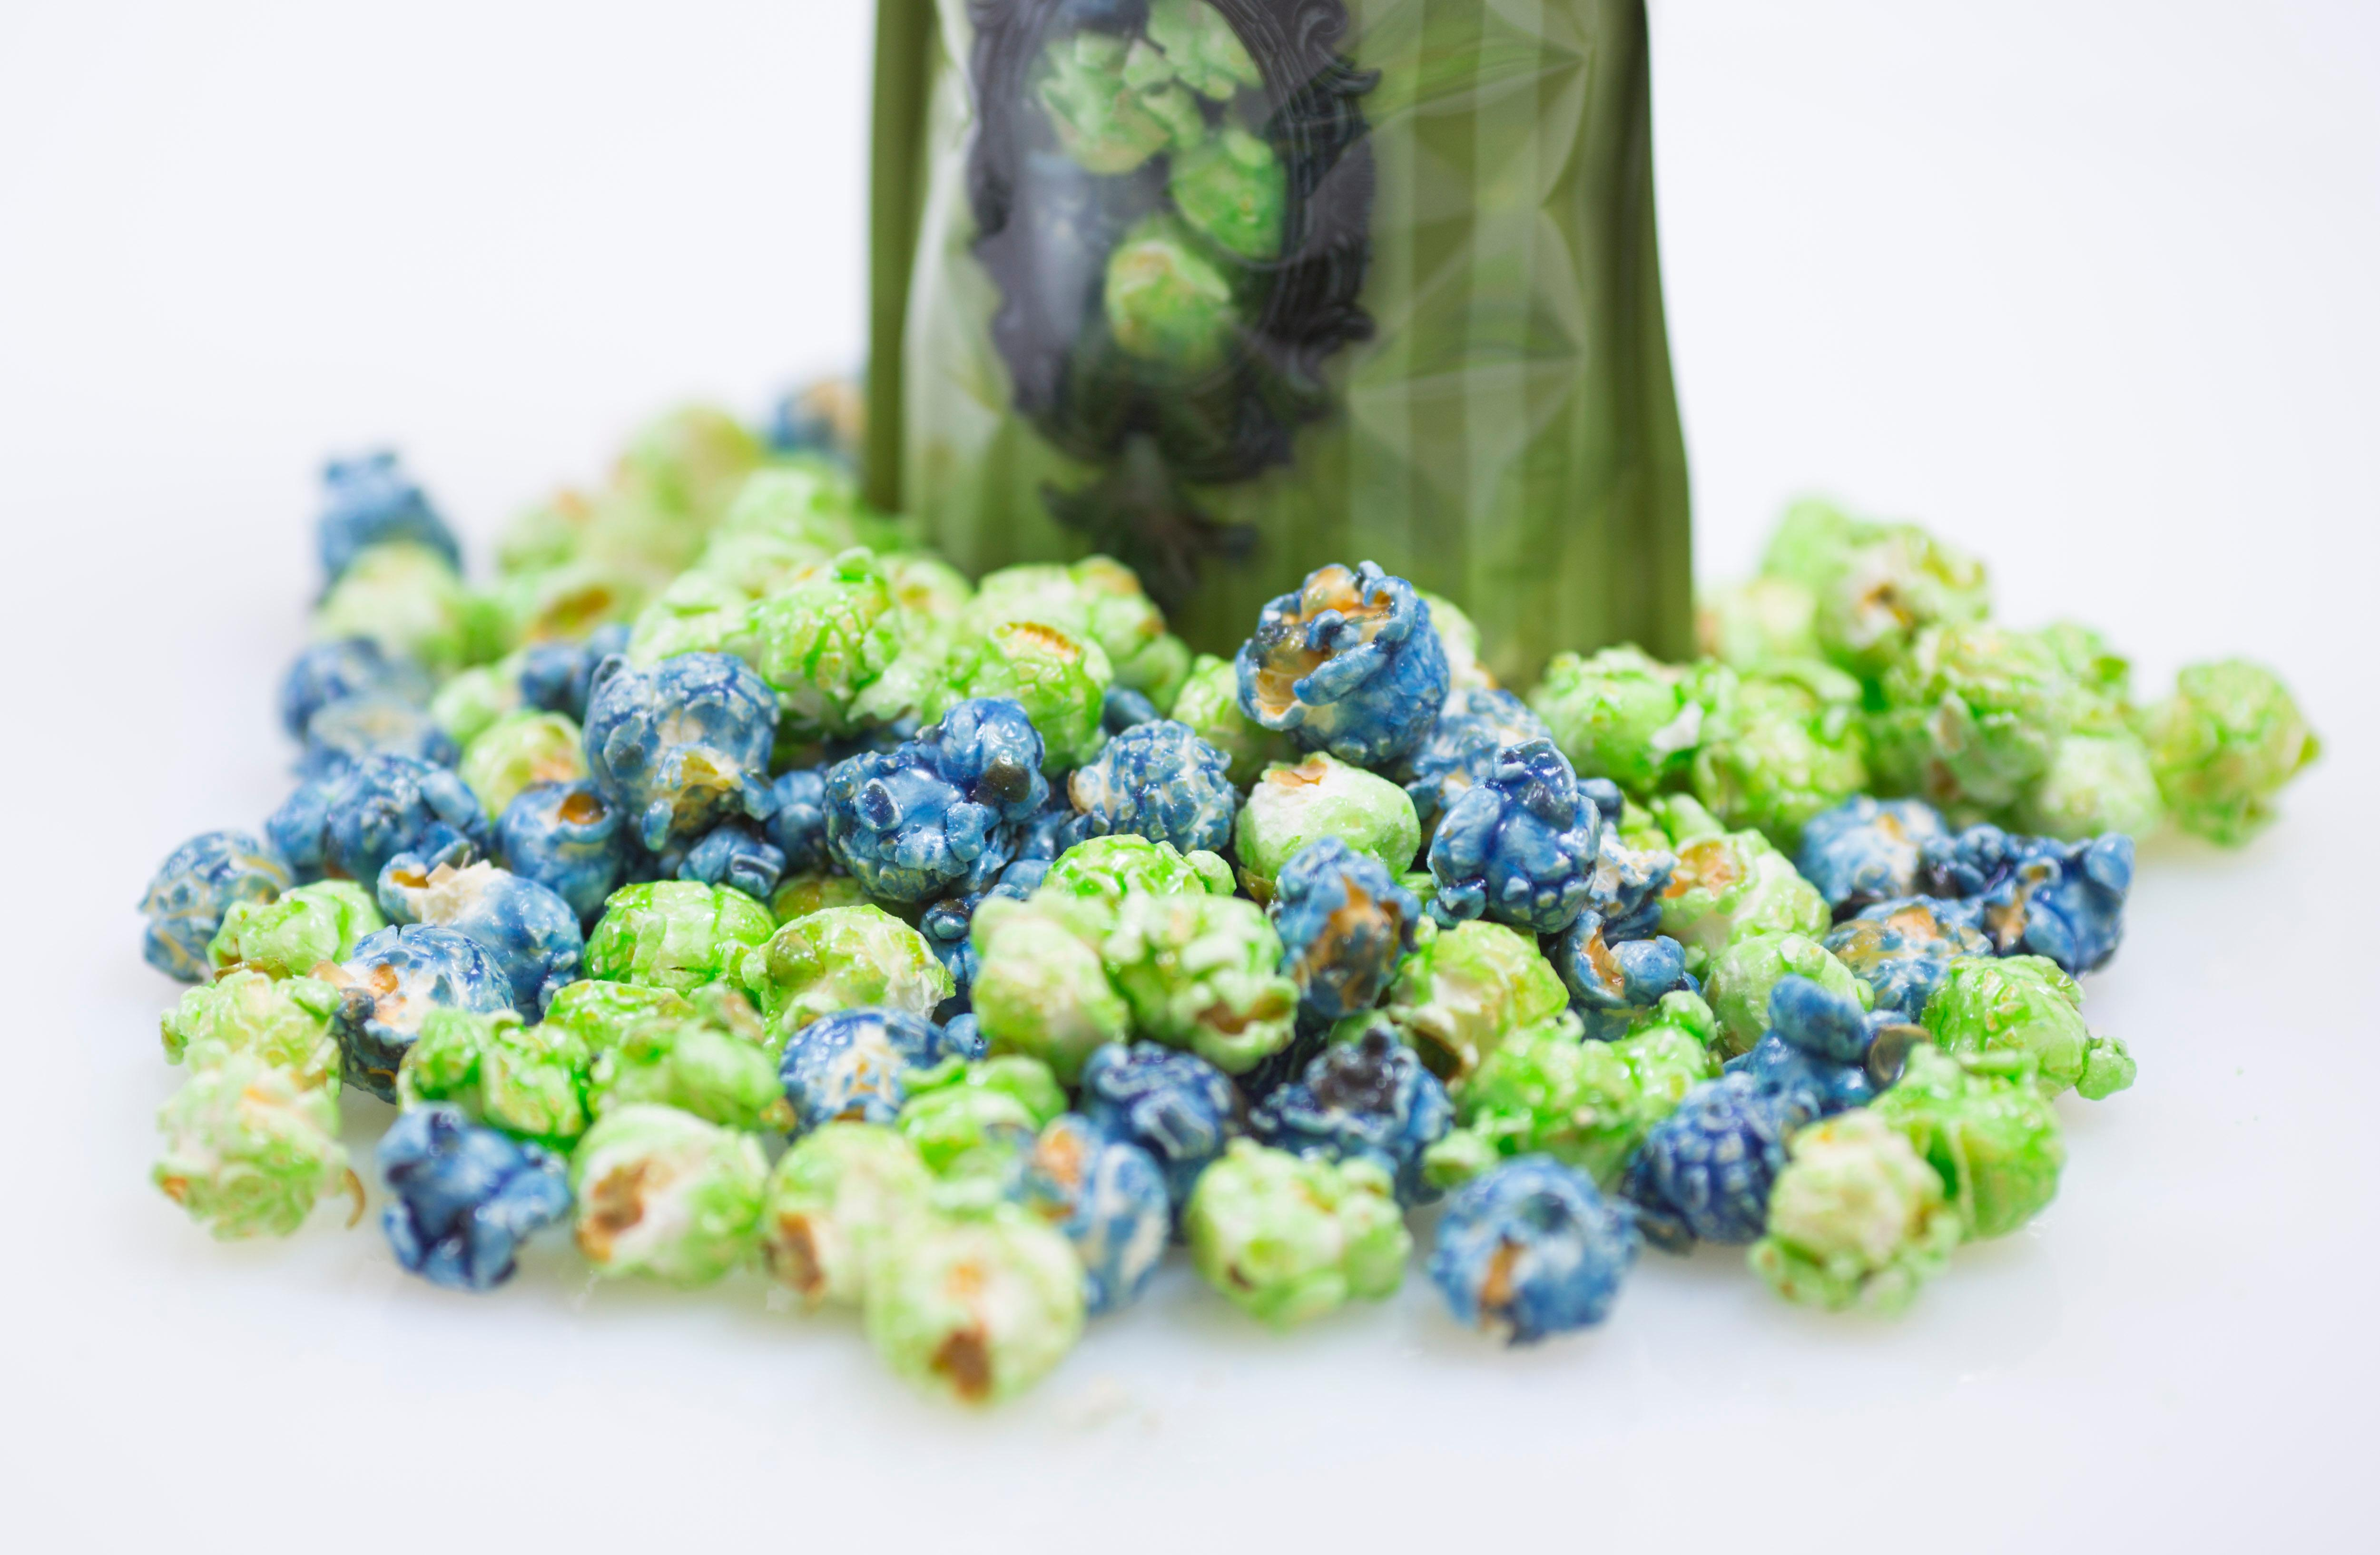 As the 2017 Seahawks season is now upon us, we thought it we be great to share a bunch of Seahawk-themed goodies that we found from local bakeries that you can buy and bring to your next tailgate party. Gourmet popcorn maker KuKuRuZa makes the 12th Corn, a lime and blueberry treat that's gluten free and vegan friendly! (Sy Bean / Seattle Refined)